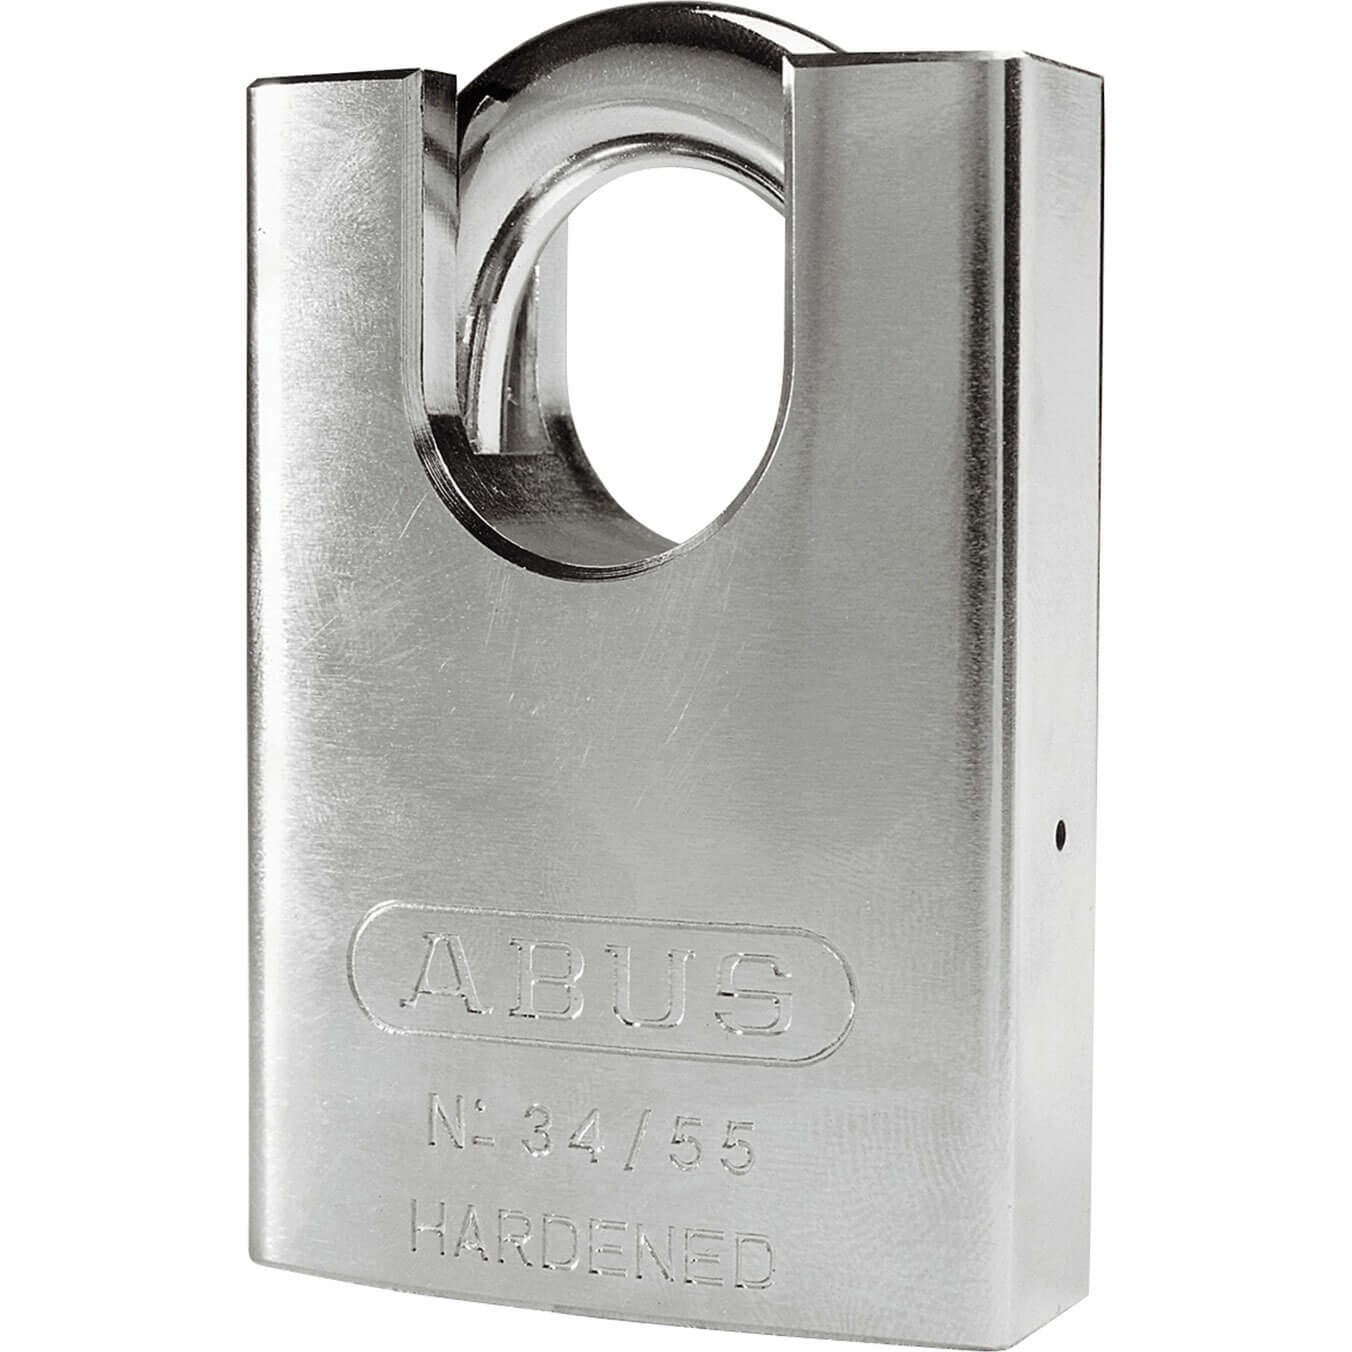 ABUS 55mm 34 Series Hardened Steel Padlock with Closed Shackle